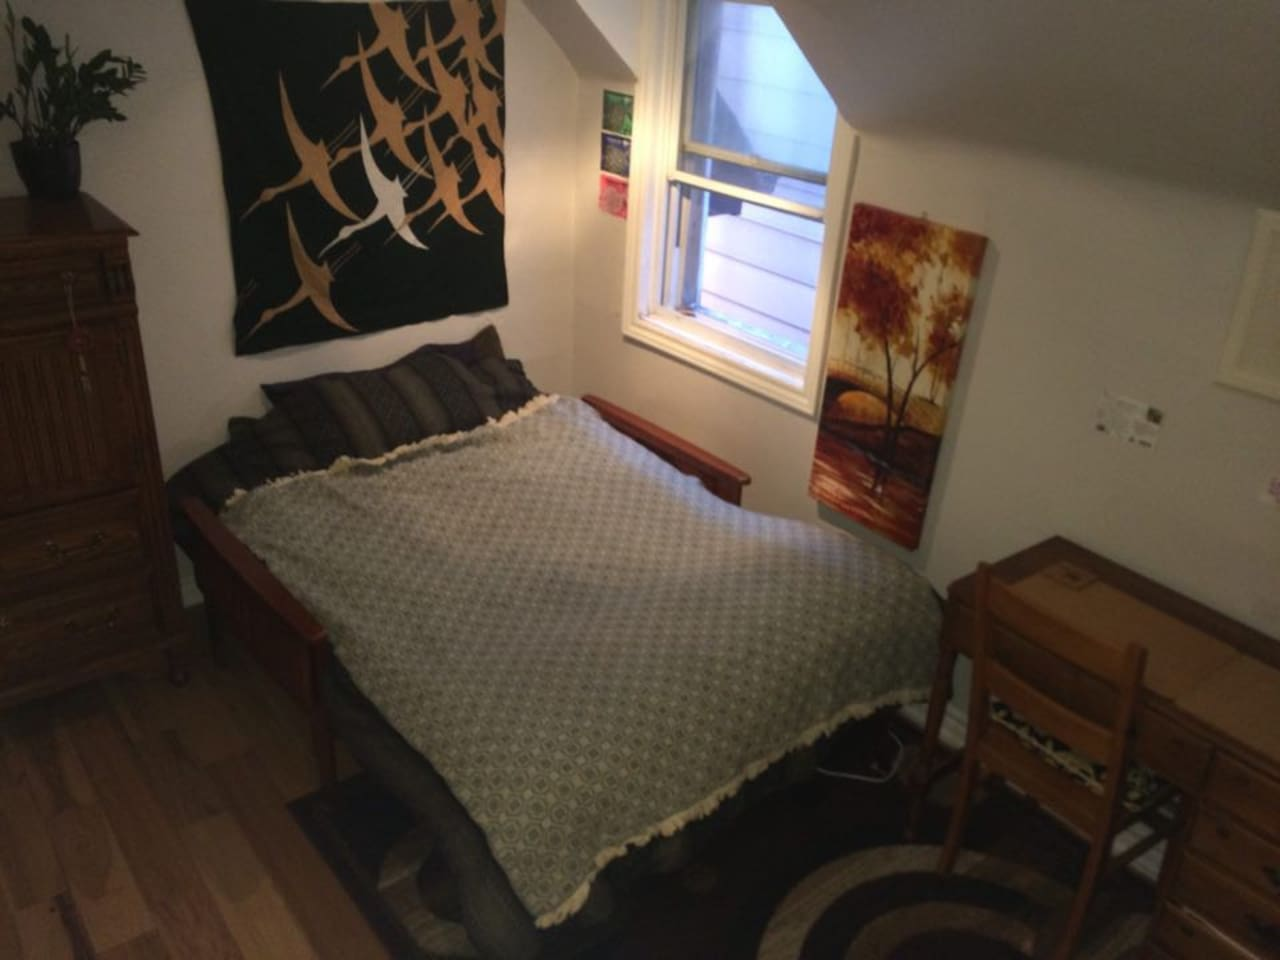 A comfortable & artistic room in our small cozy apt!